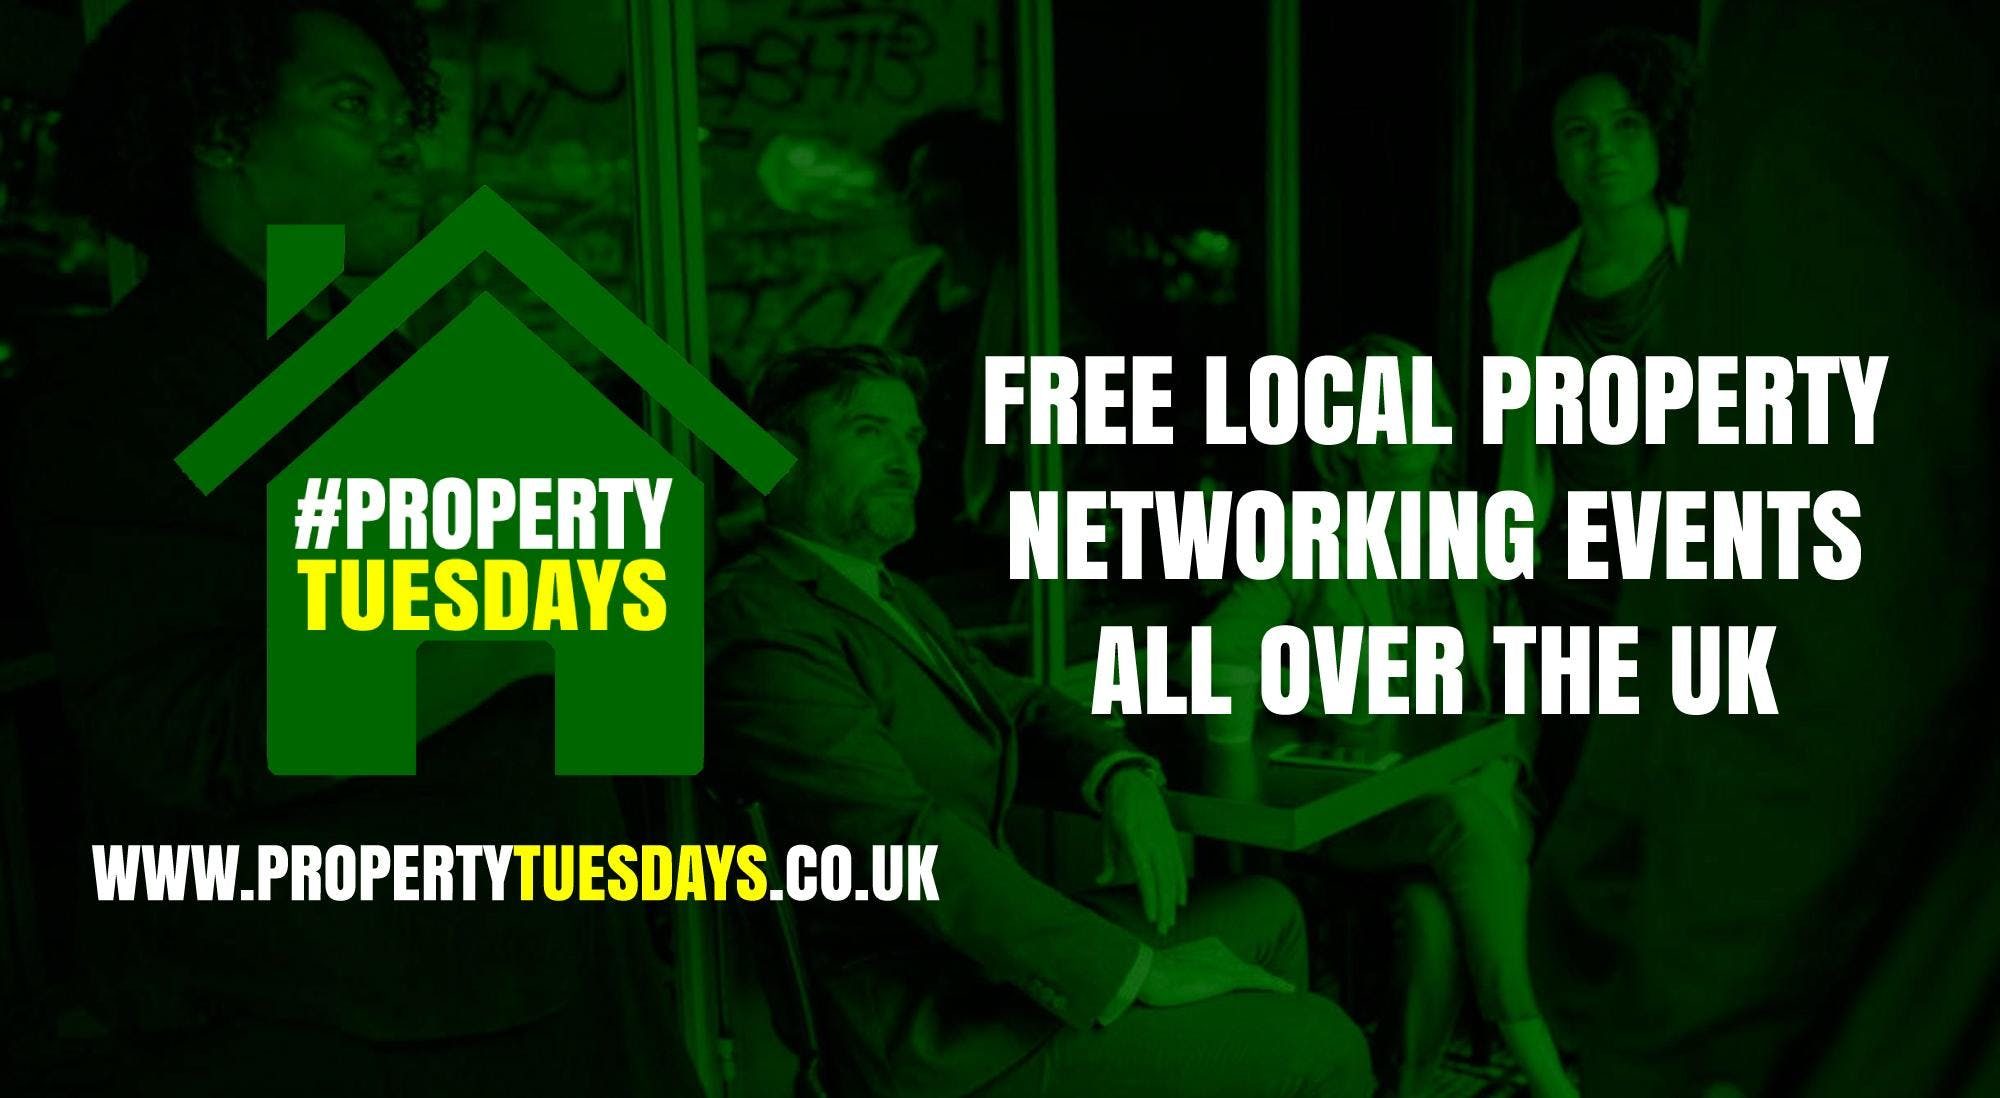 Property Tuesdays! Free property networking event in Penrith